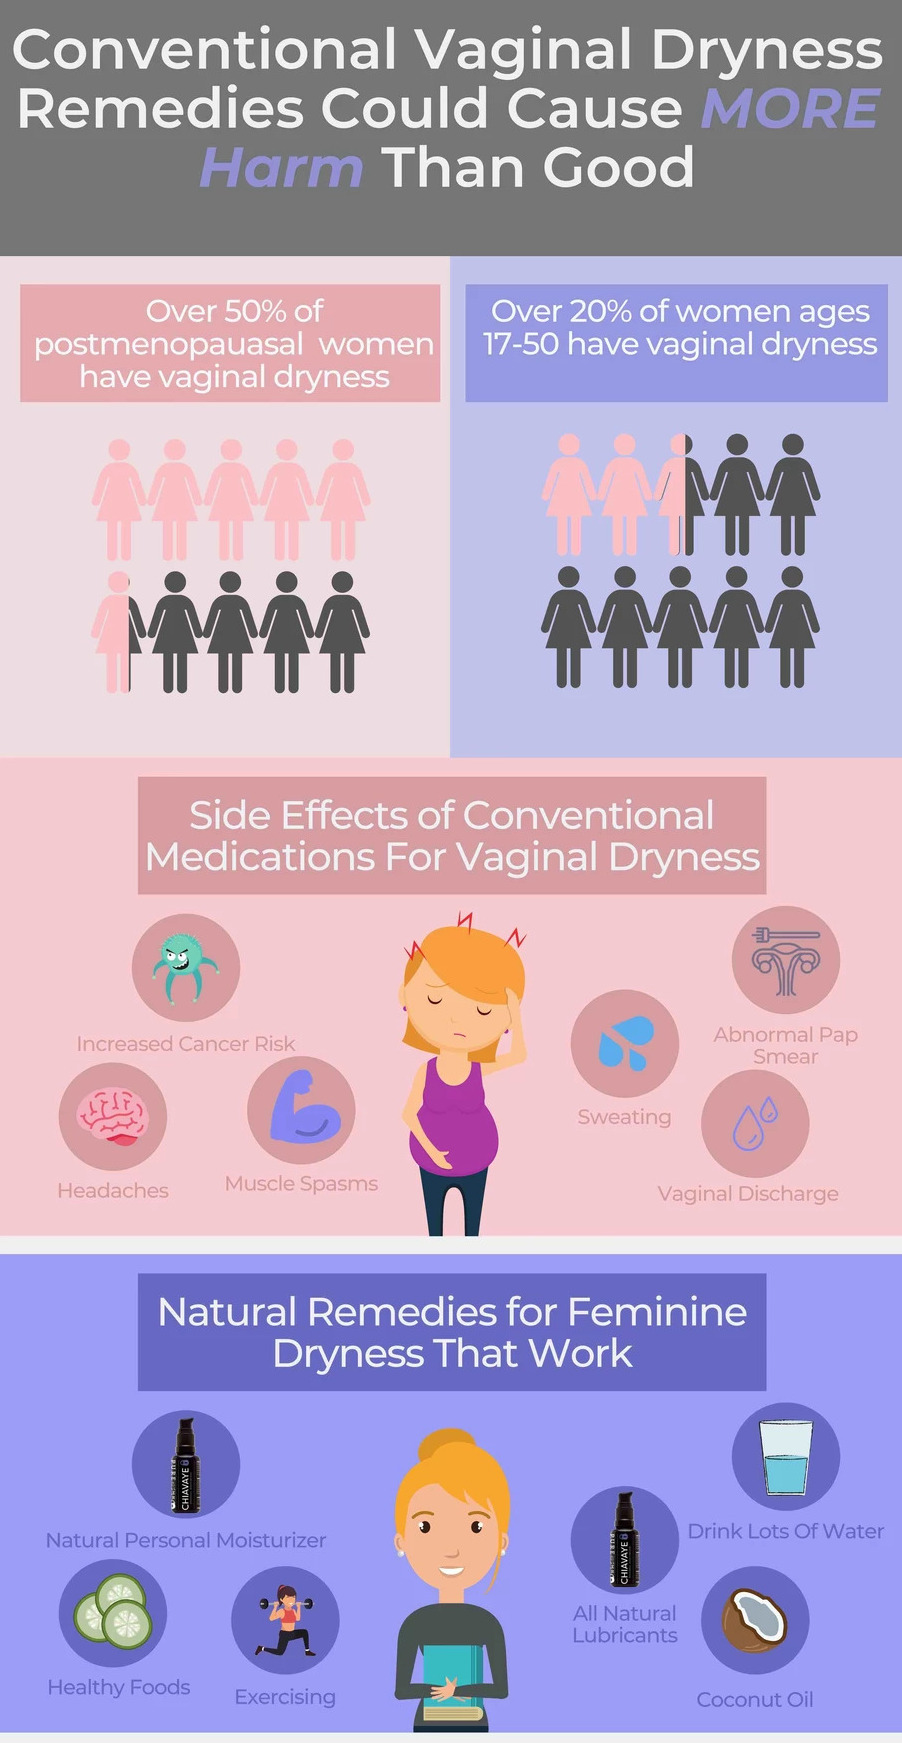 Conventional Vaginal Dryness remedies can harm